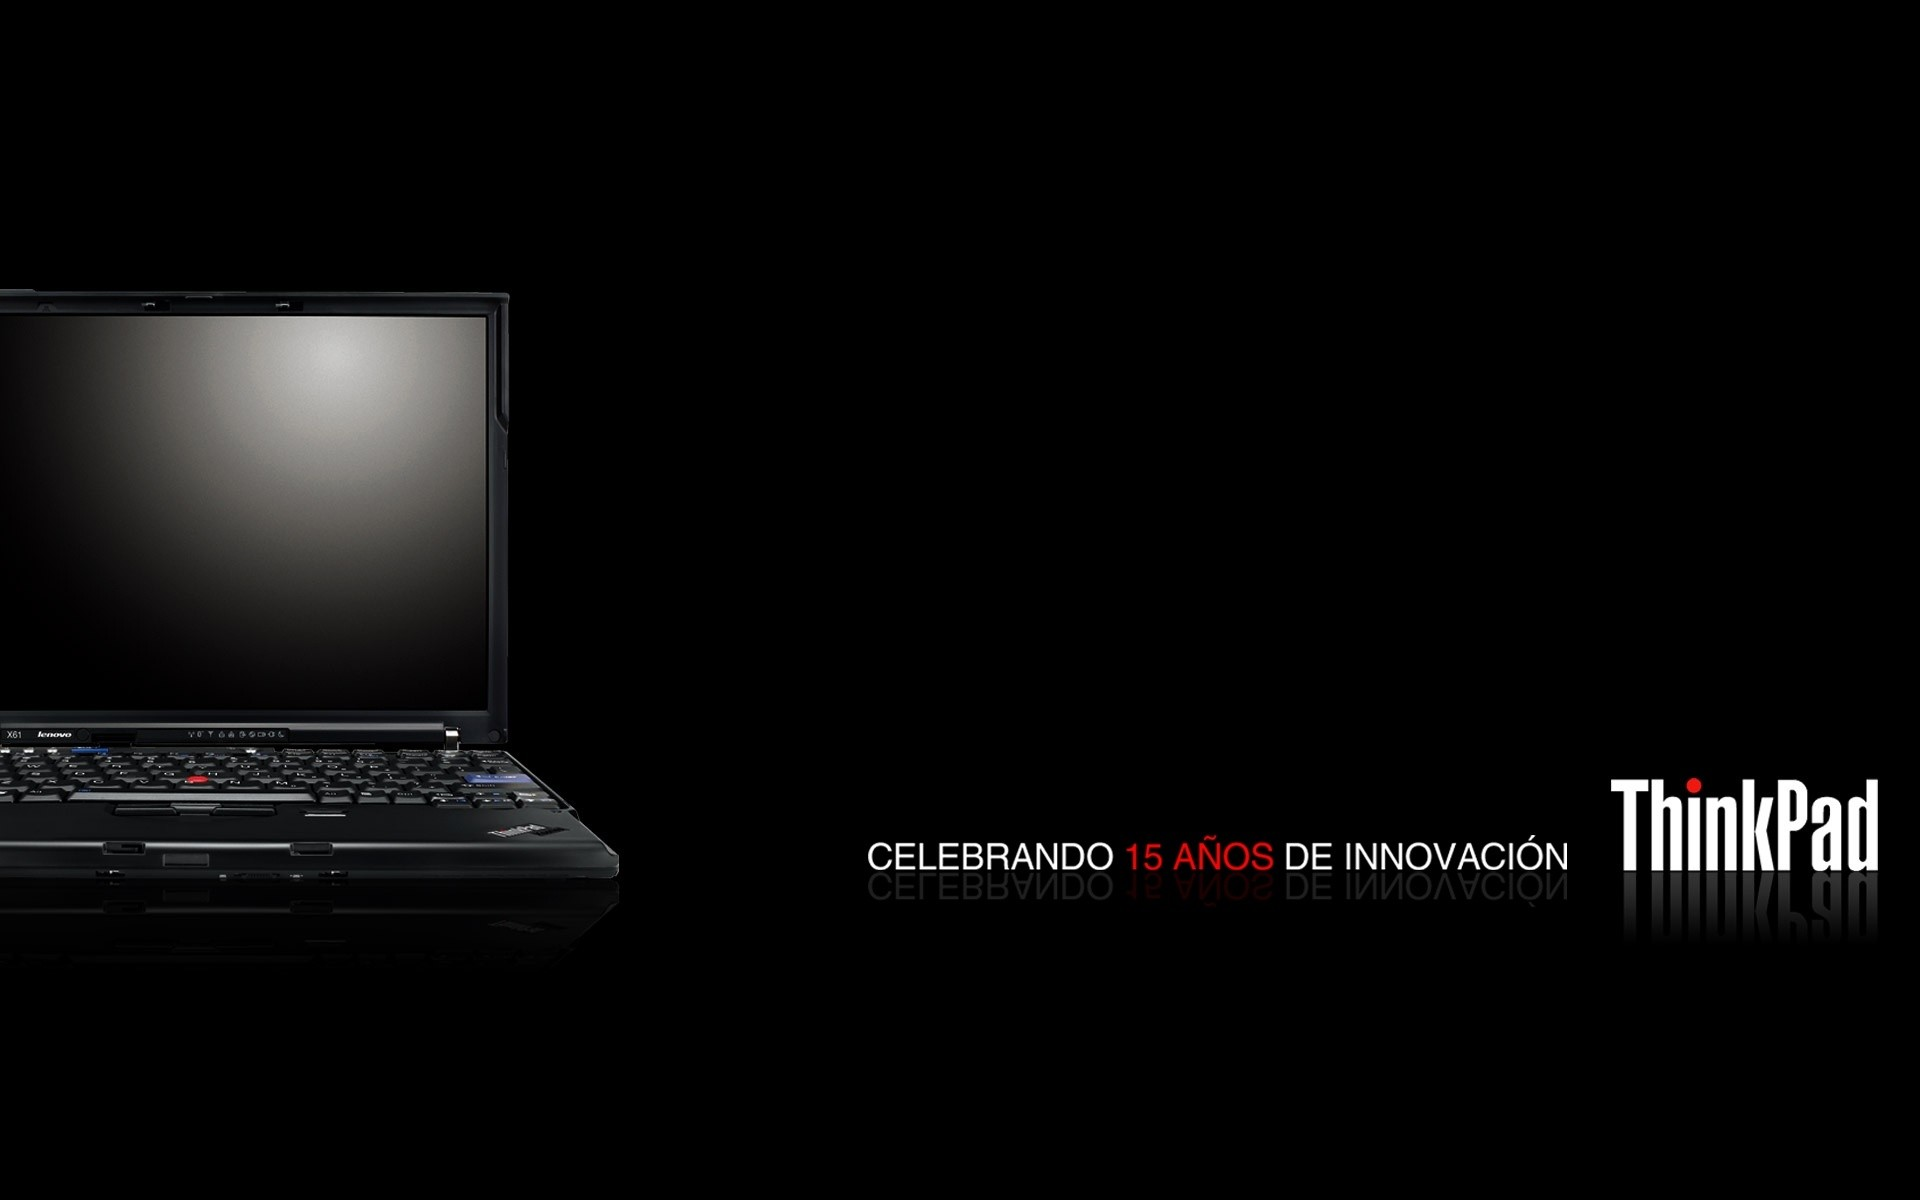 1920x1200 ... lenovo logo wallpaper; free download lenovo thinkpad backgrounds page 2  of 3 ...